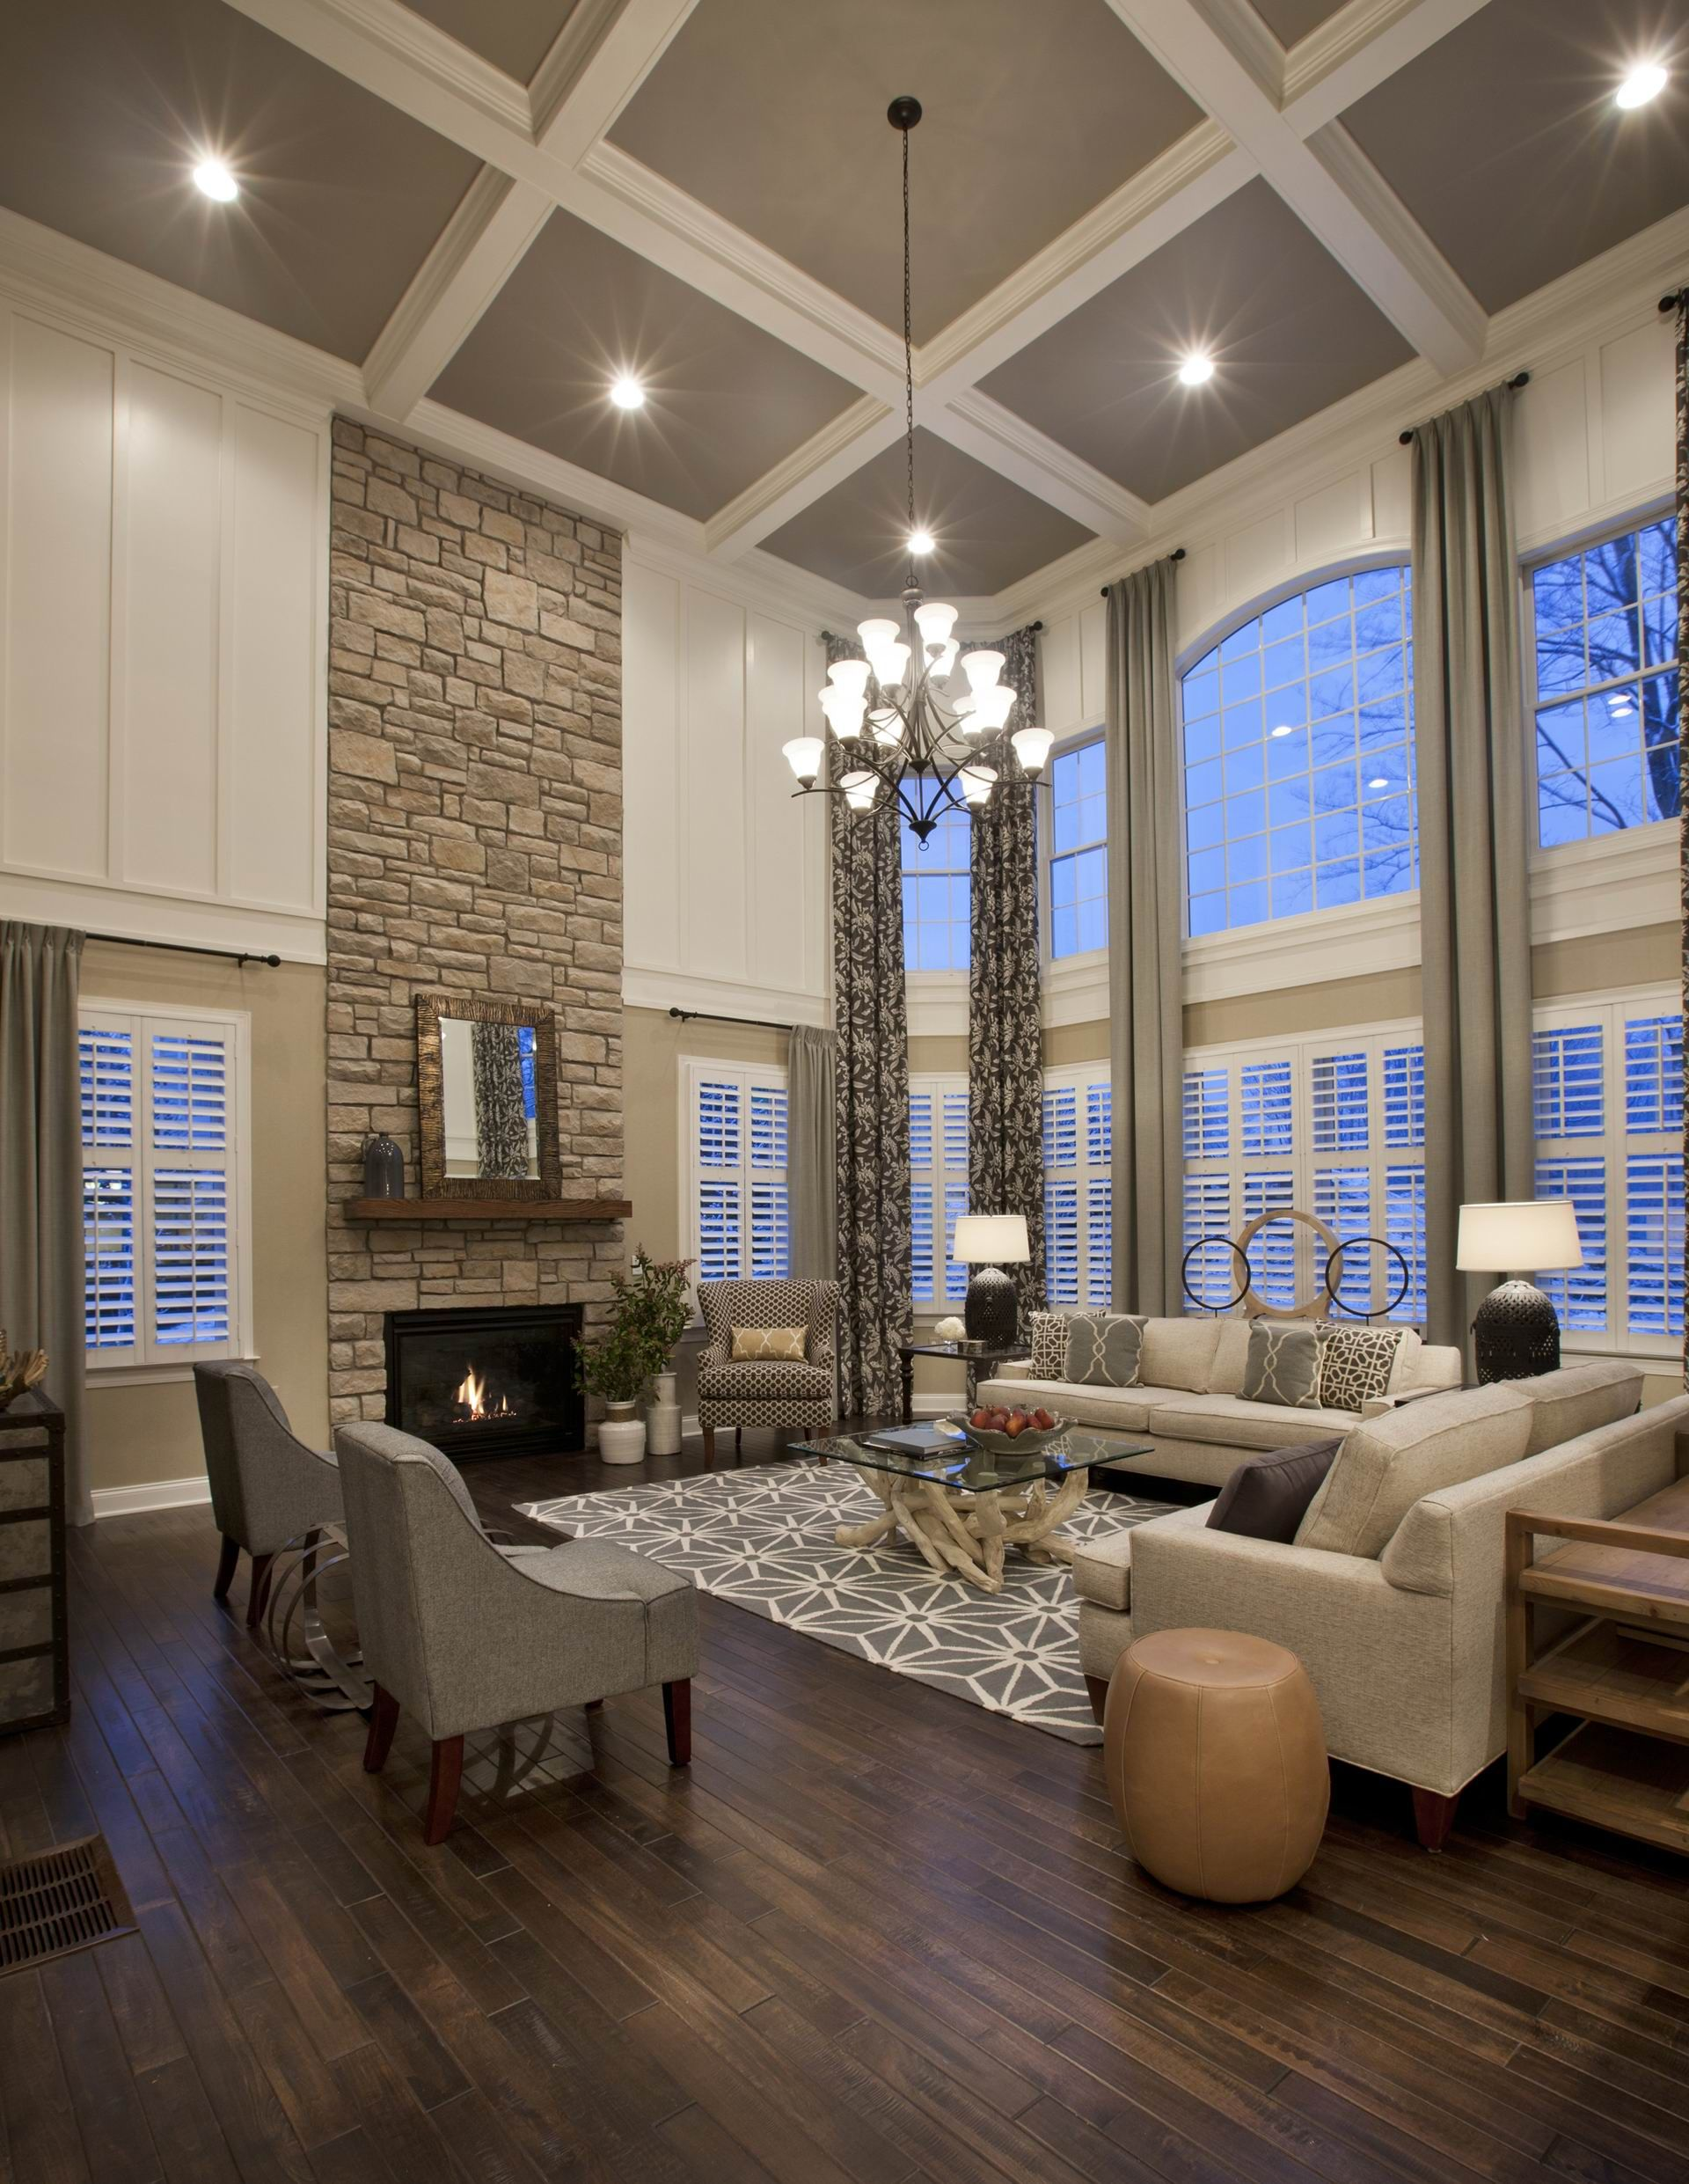 Traditional Family Room Ideas Part - 25: Family Room - Estates At Cohasset By Toll Brothers - Interior Design By  Mary Cook Associates